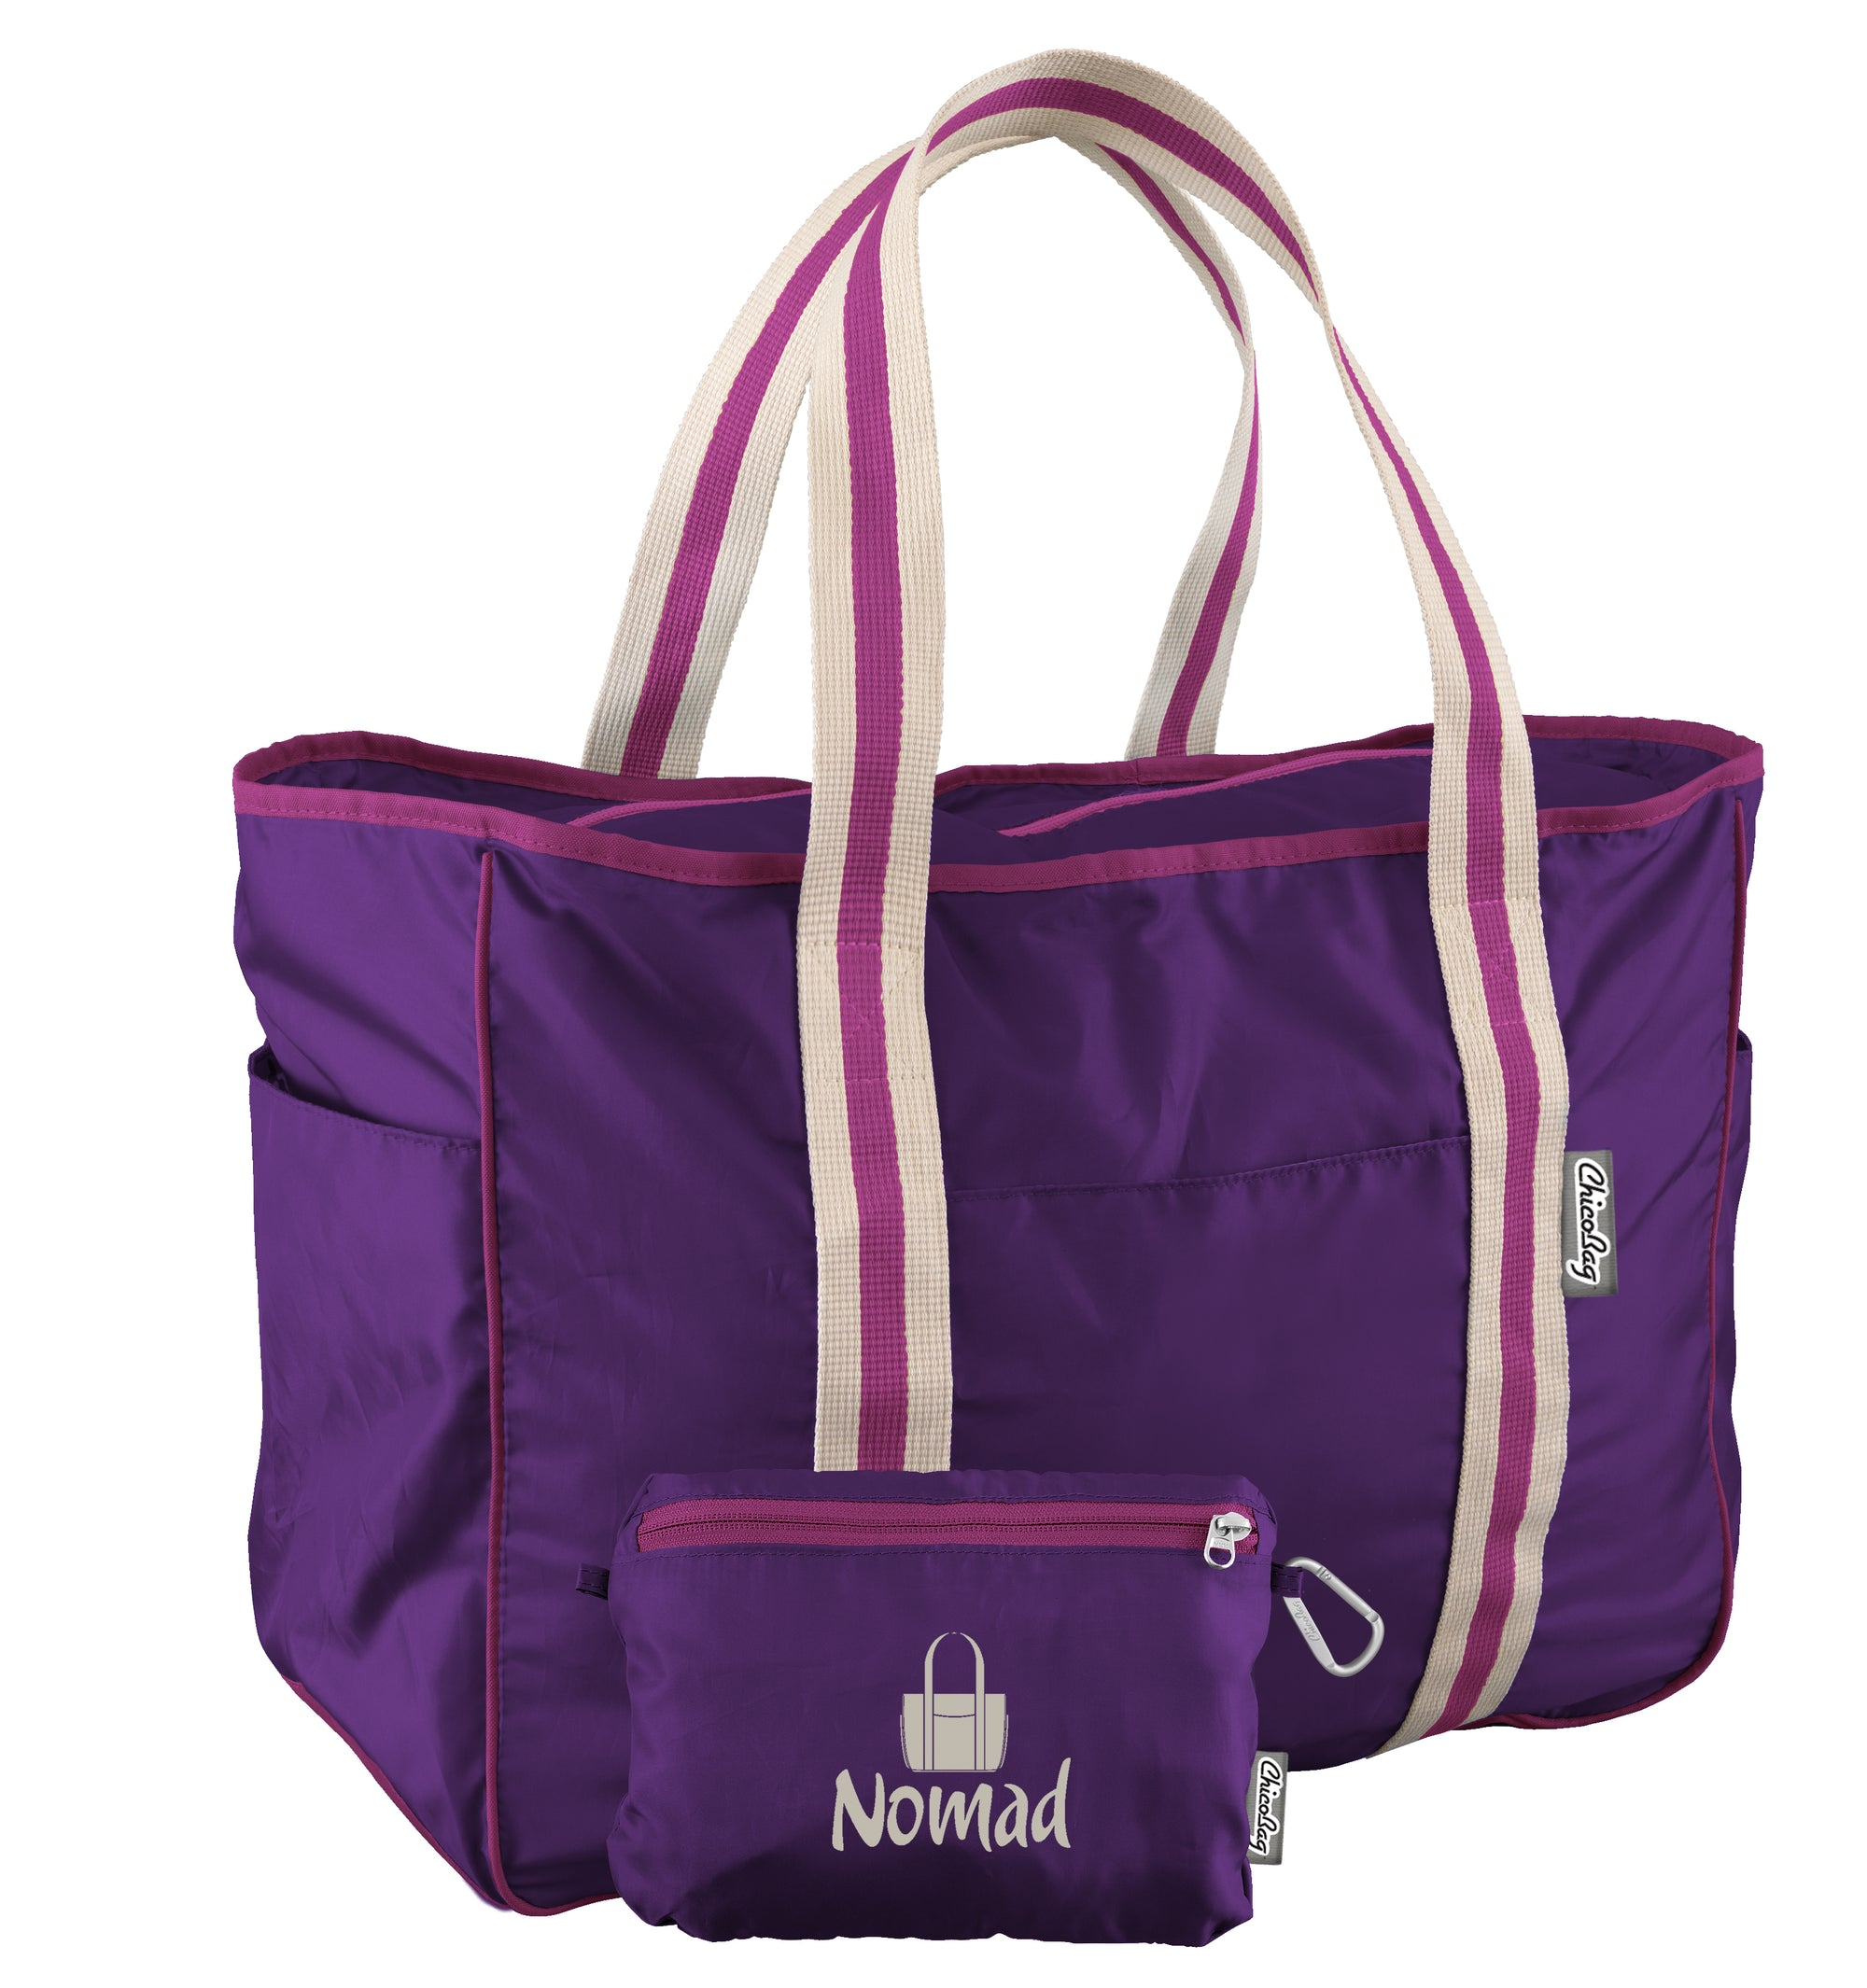 ChicoBag Purple Nomad Tote Large Capacity Shoulder Tote That Stuffs Into its built-in pouch On a White Background